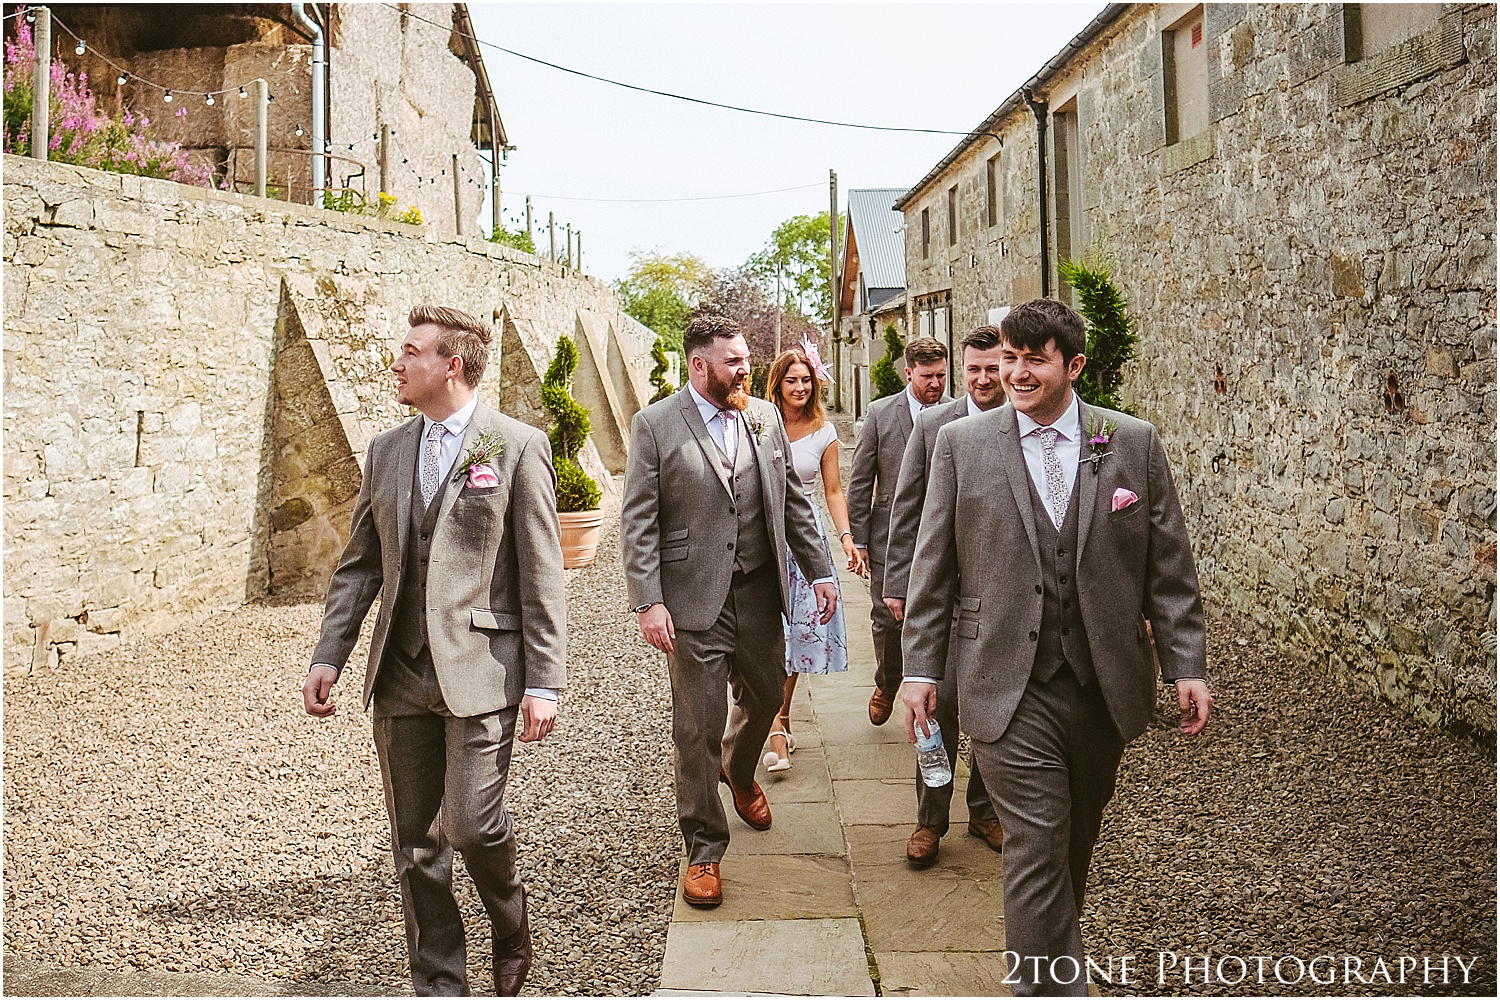 Doxford barns wedding photographer 018.jpg